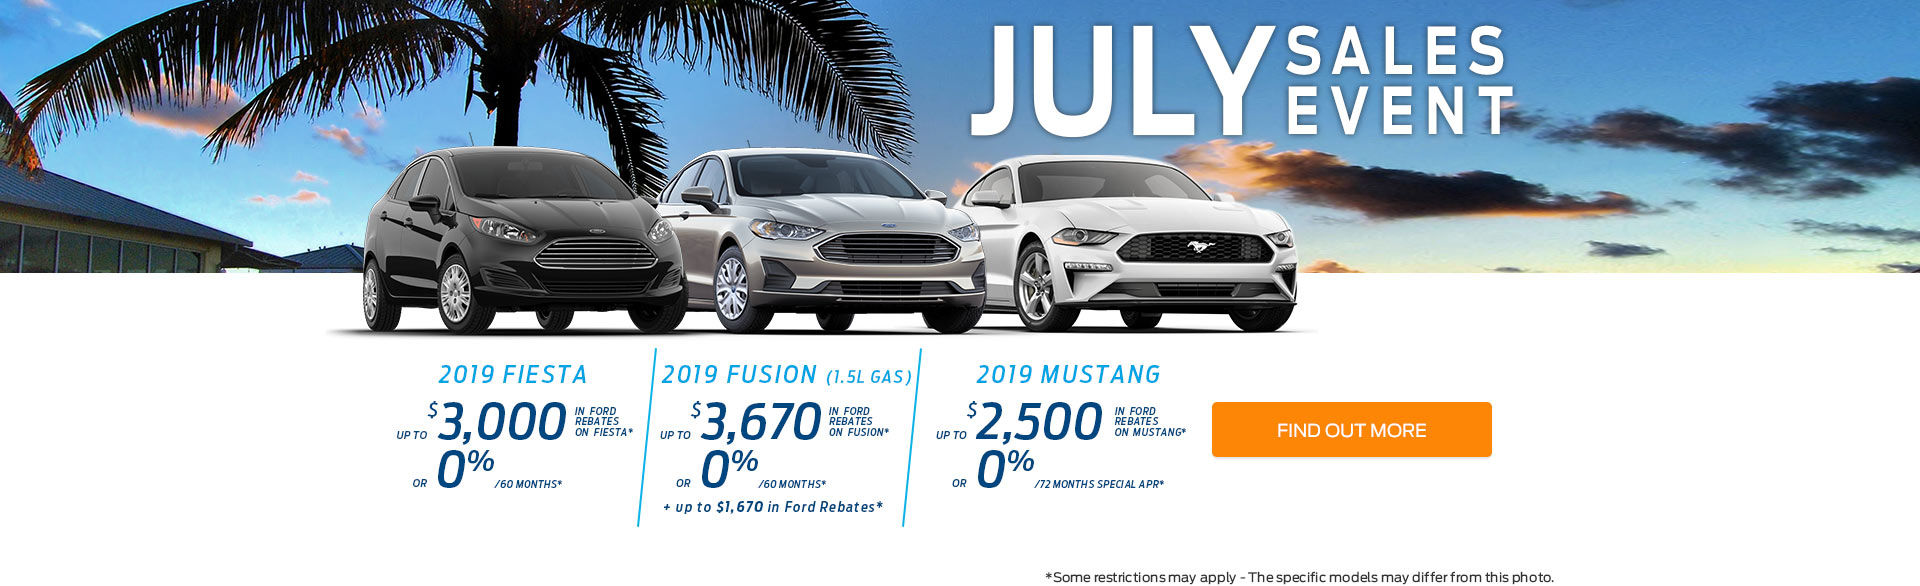 Get a new 2019 Ford today!